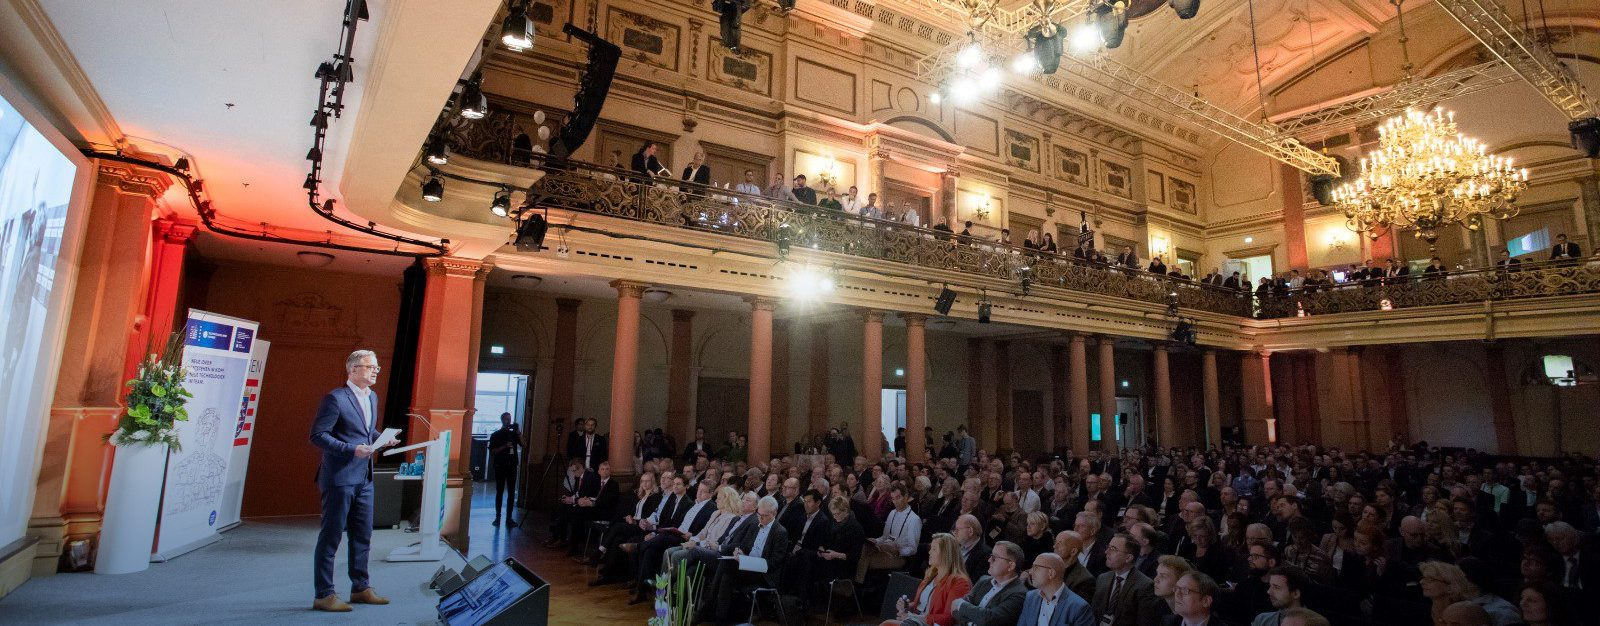 2. Hessischer Innovationskongress 2018